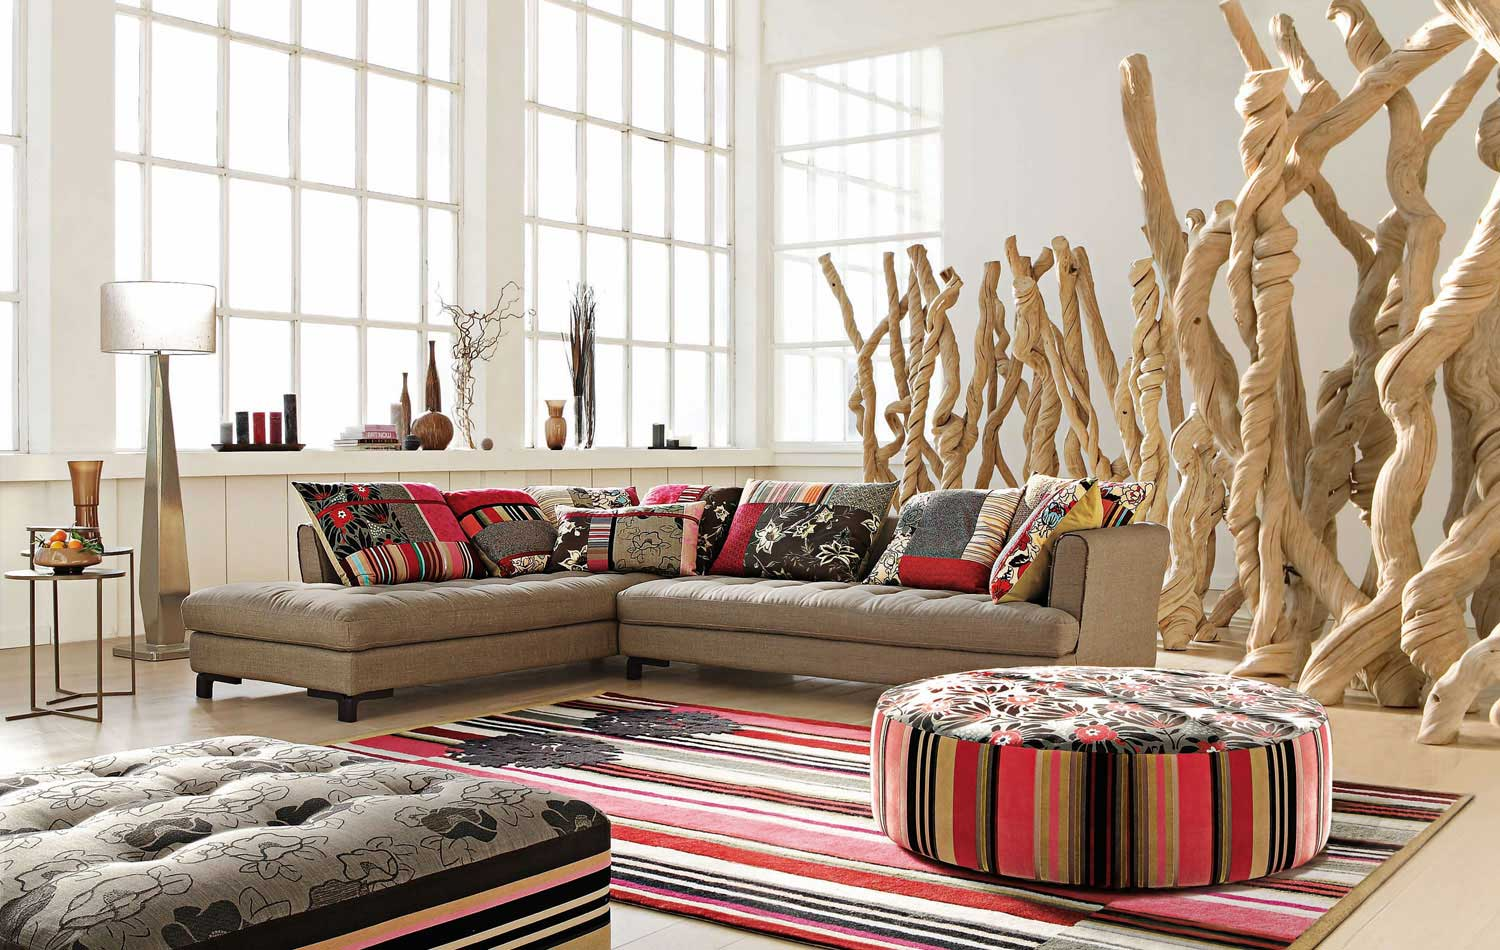 Living Room Inspiration 120 Modern Sofas by Roche Bobois Part 13  Architecture  Design